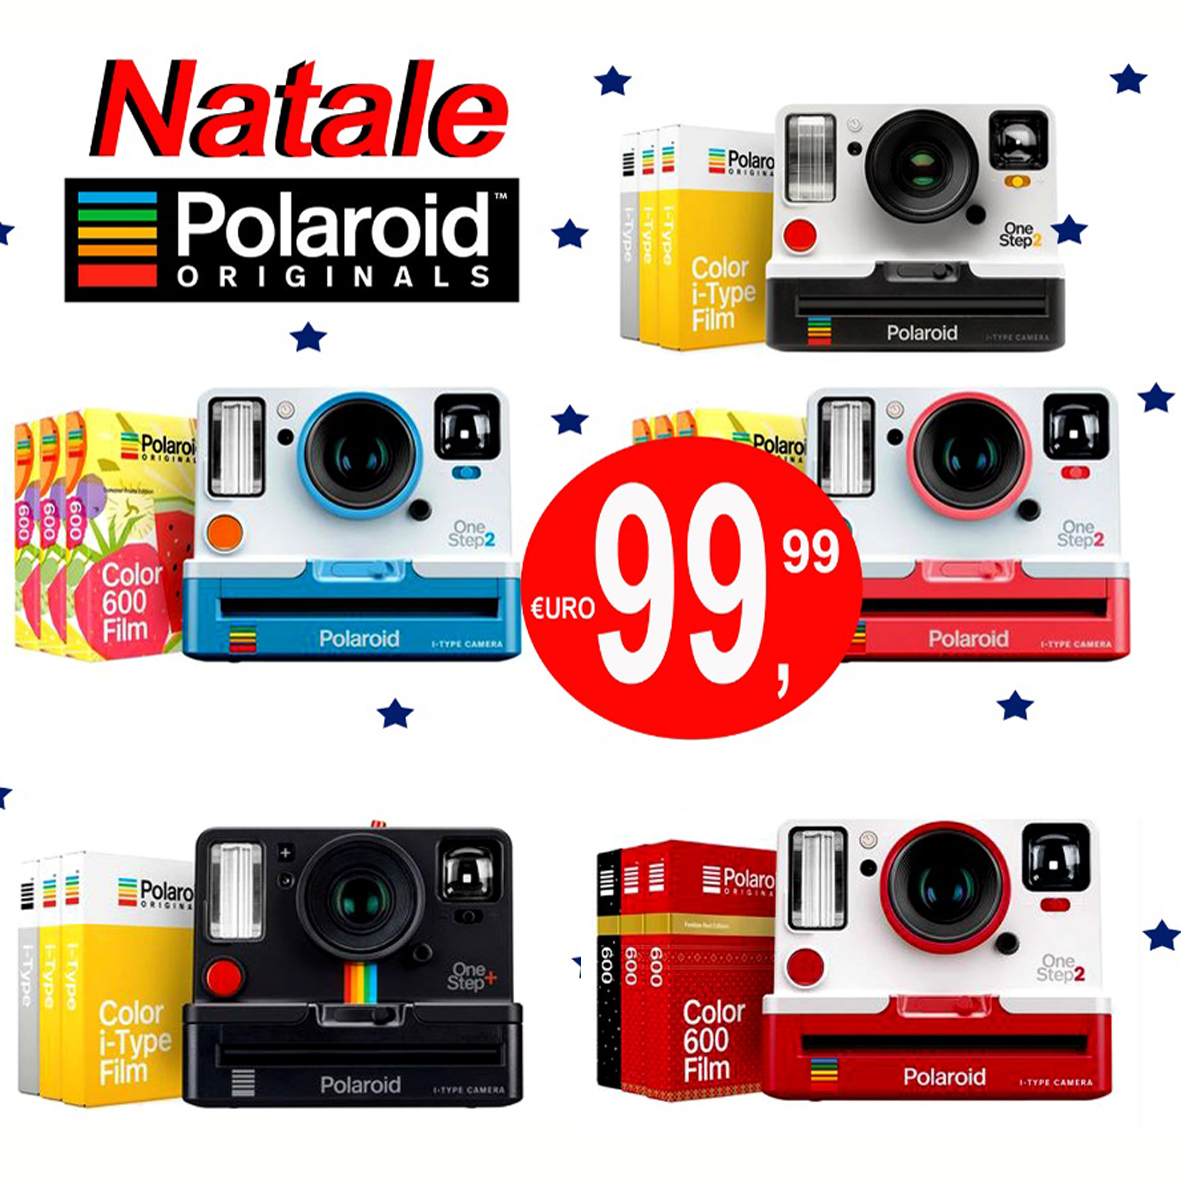 CALABRESE FOTOTTICA GROUP INFORMA : IDEA REGALO NATALE 2019 POLAROID ONE STEP 2 VIEWFINDER